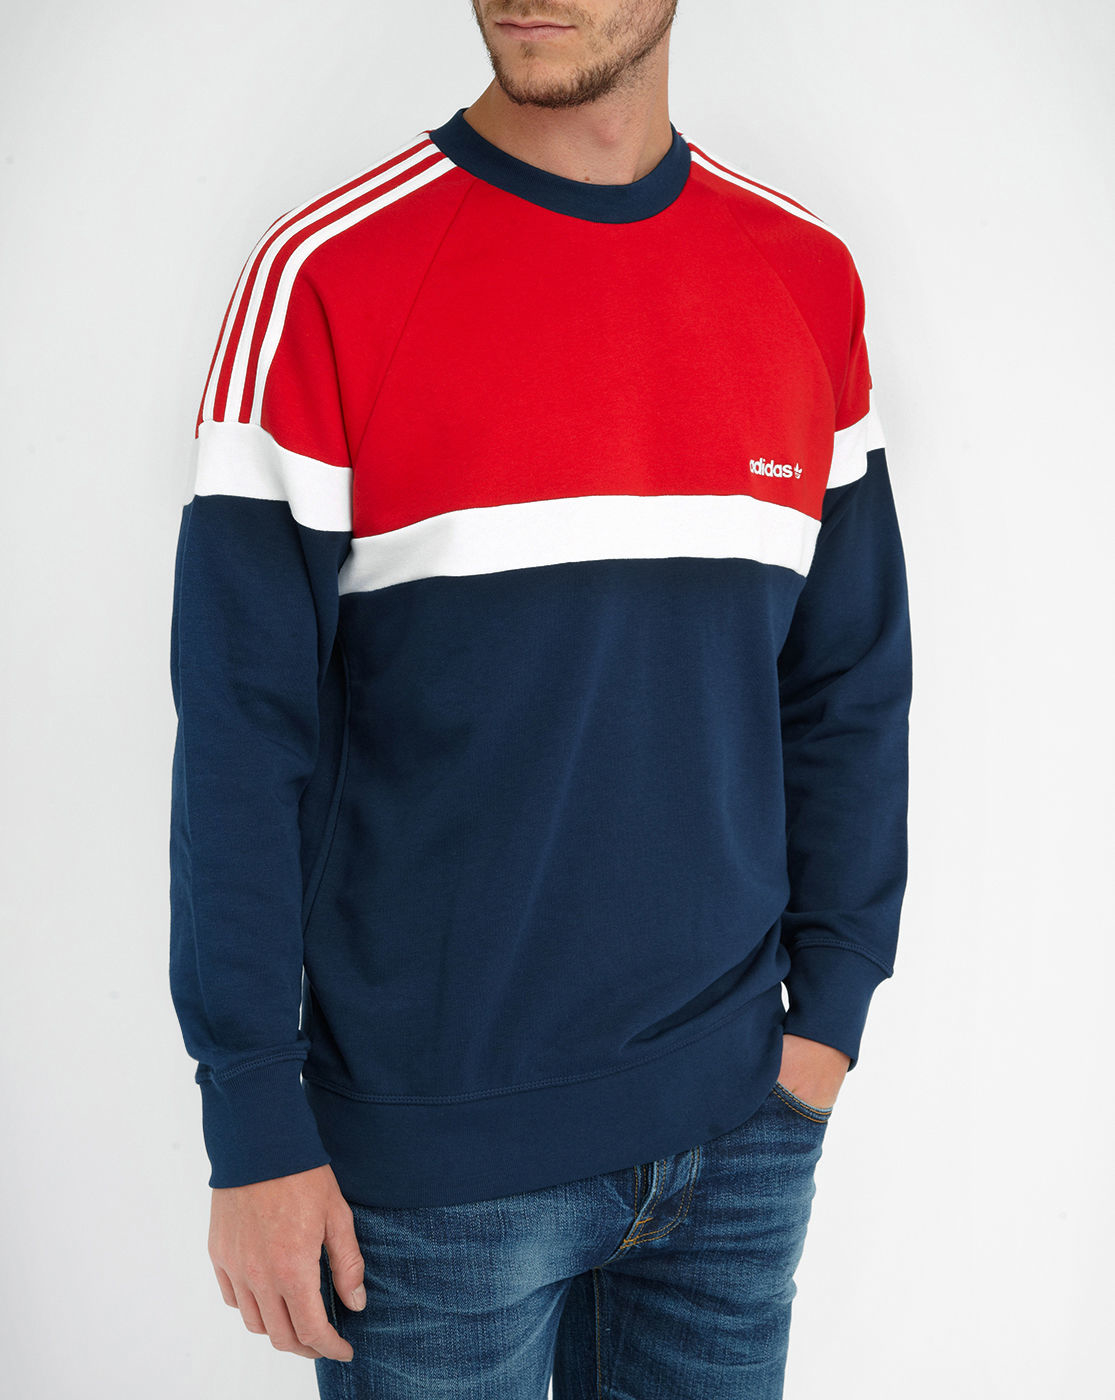 adidas blue red white tricolour raglan sweatshirt in blue. Black Bedroom Furniture Sets. Home Design Ideas